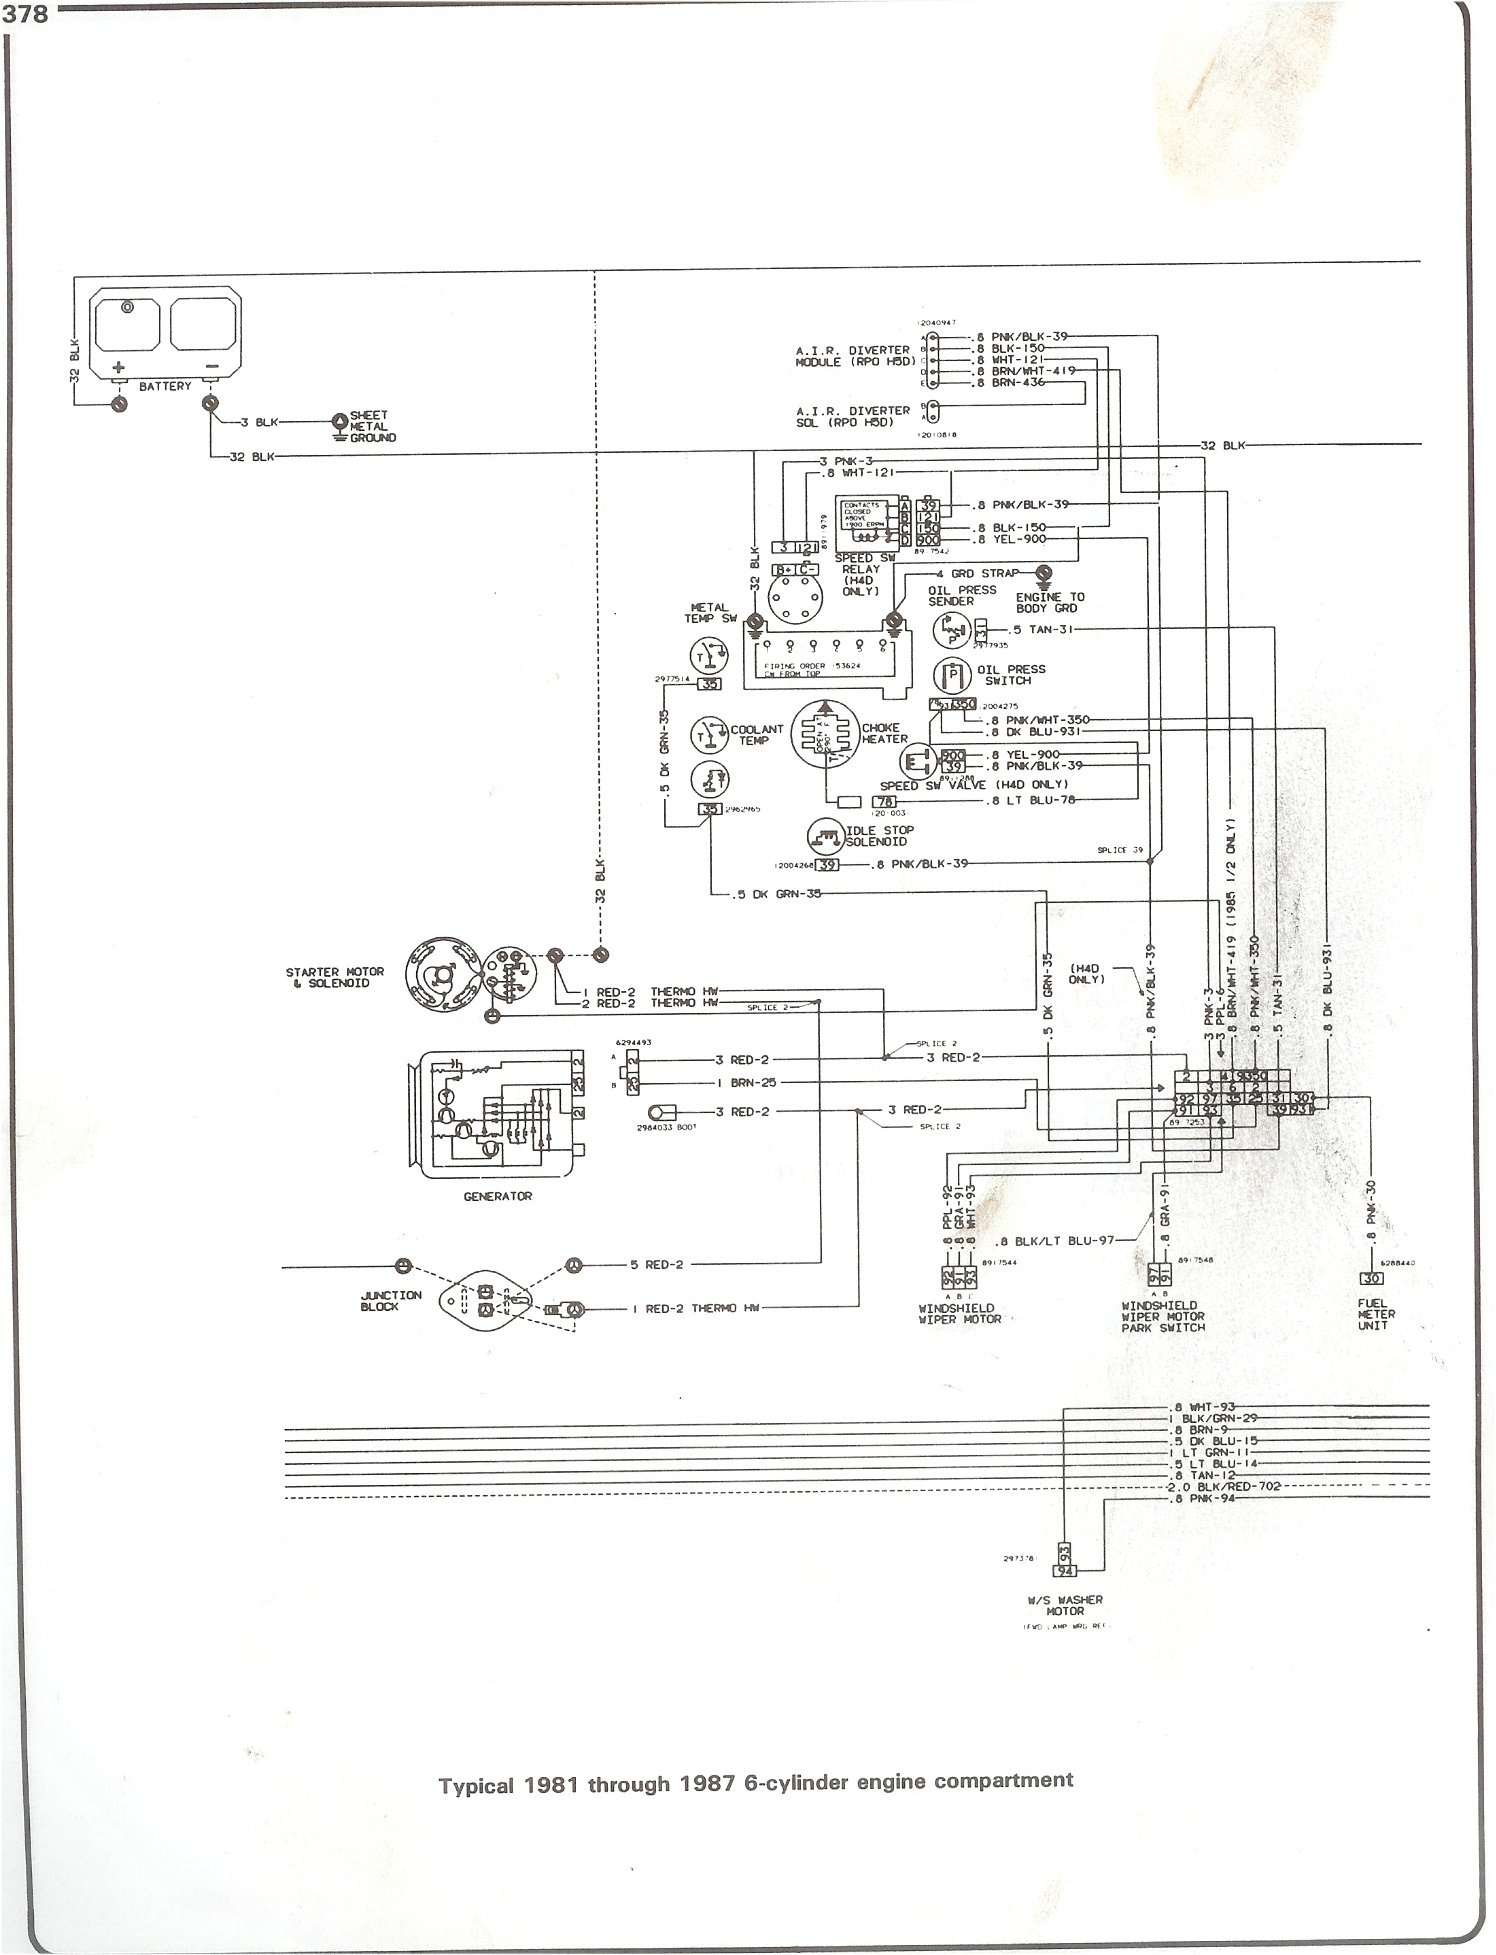 1989 Chevy K1500 Heater Wiring Diagram Not Lossing Caprice Complete 73 87 Diagrams S10